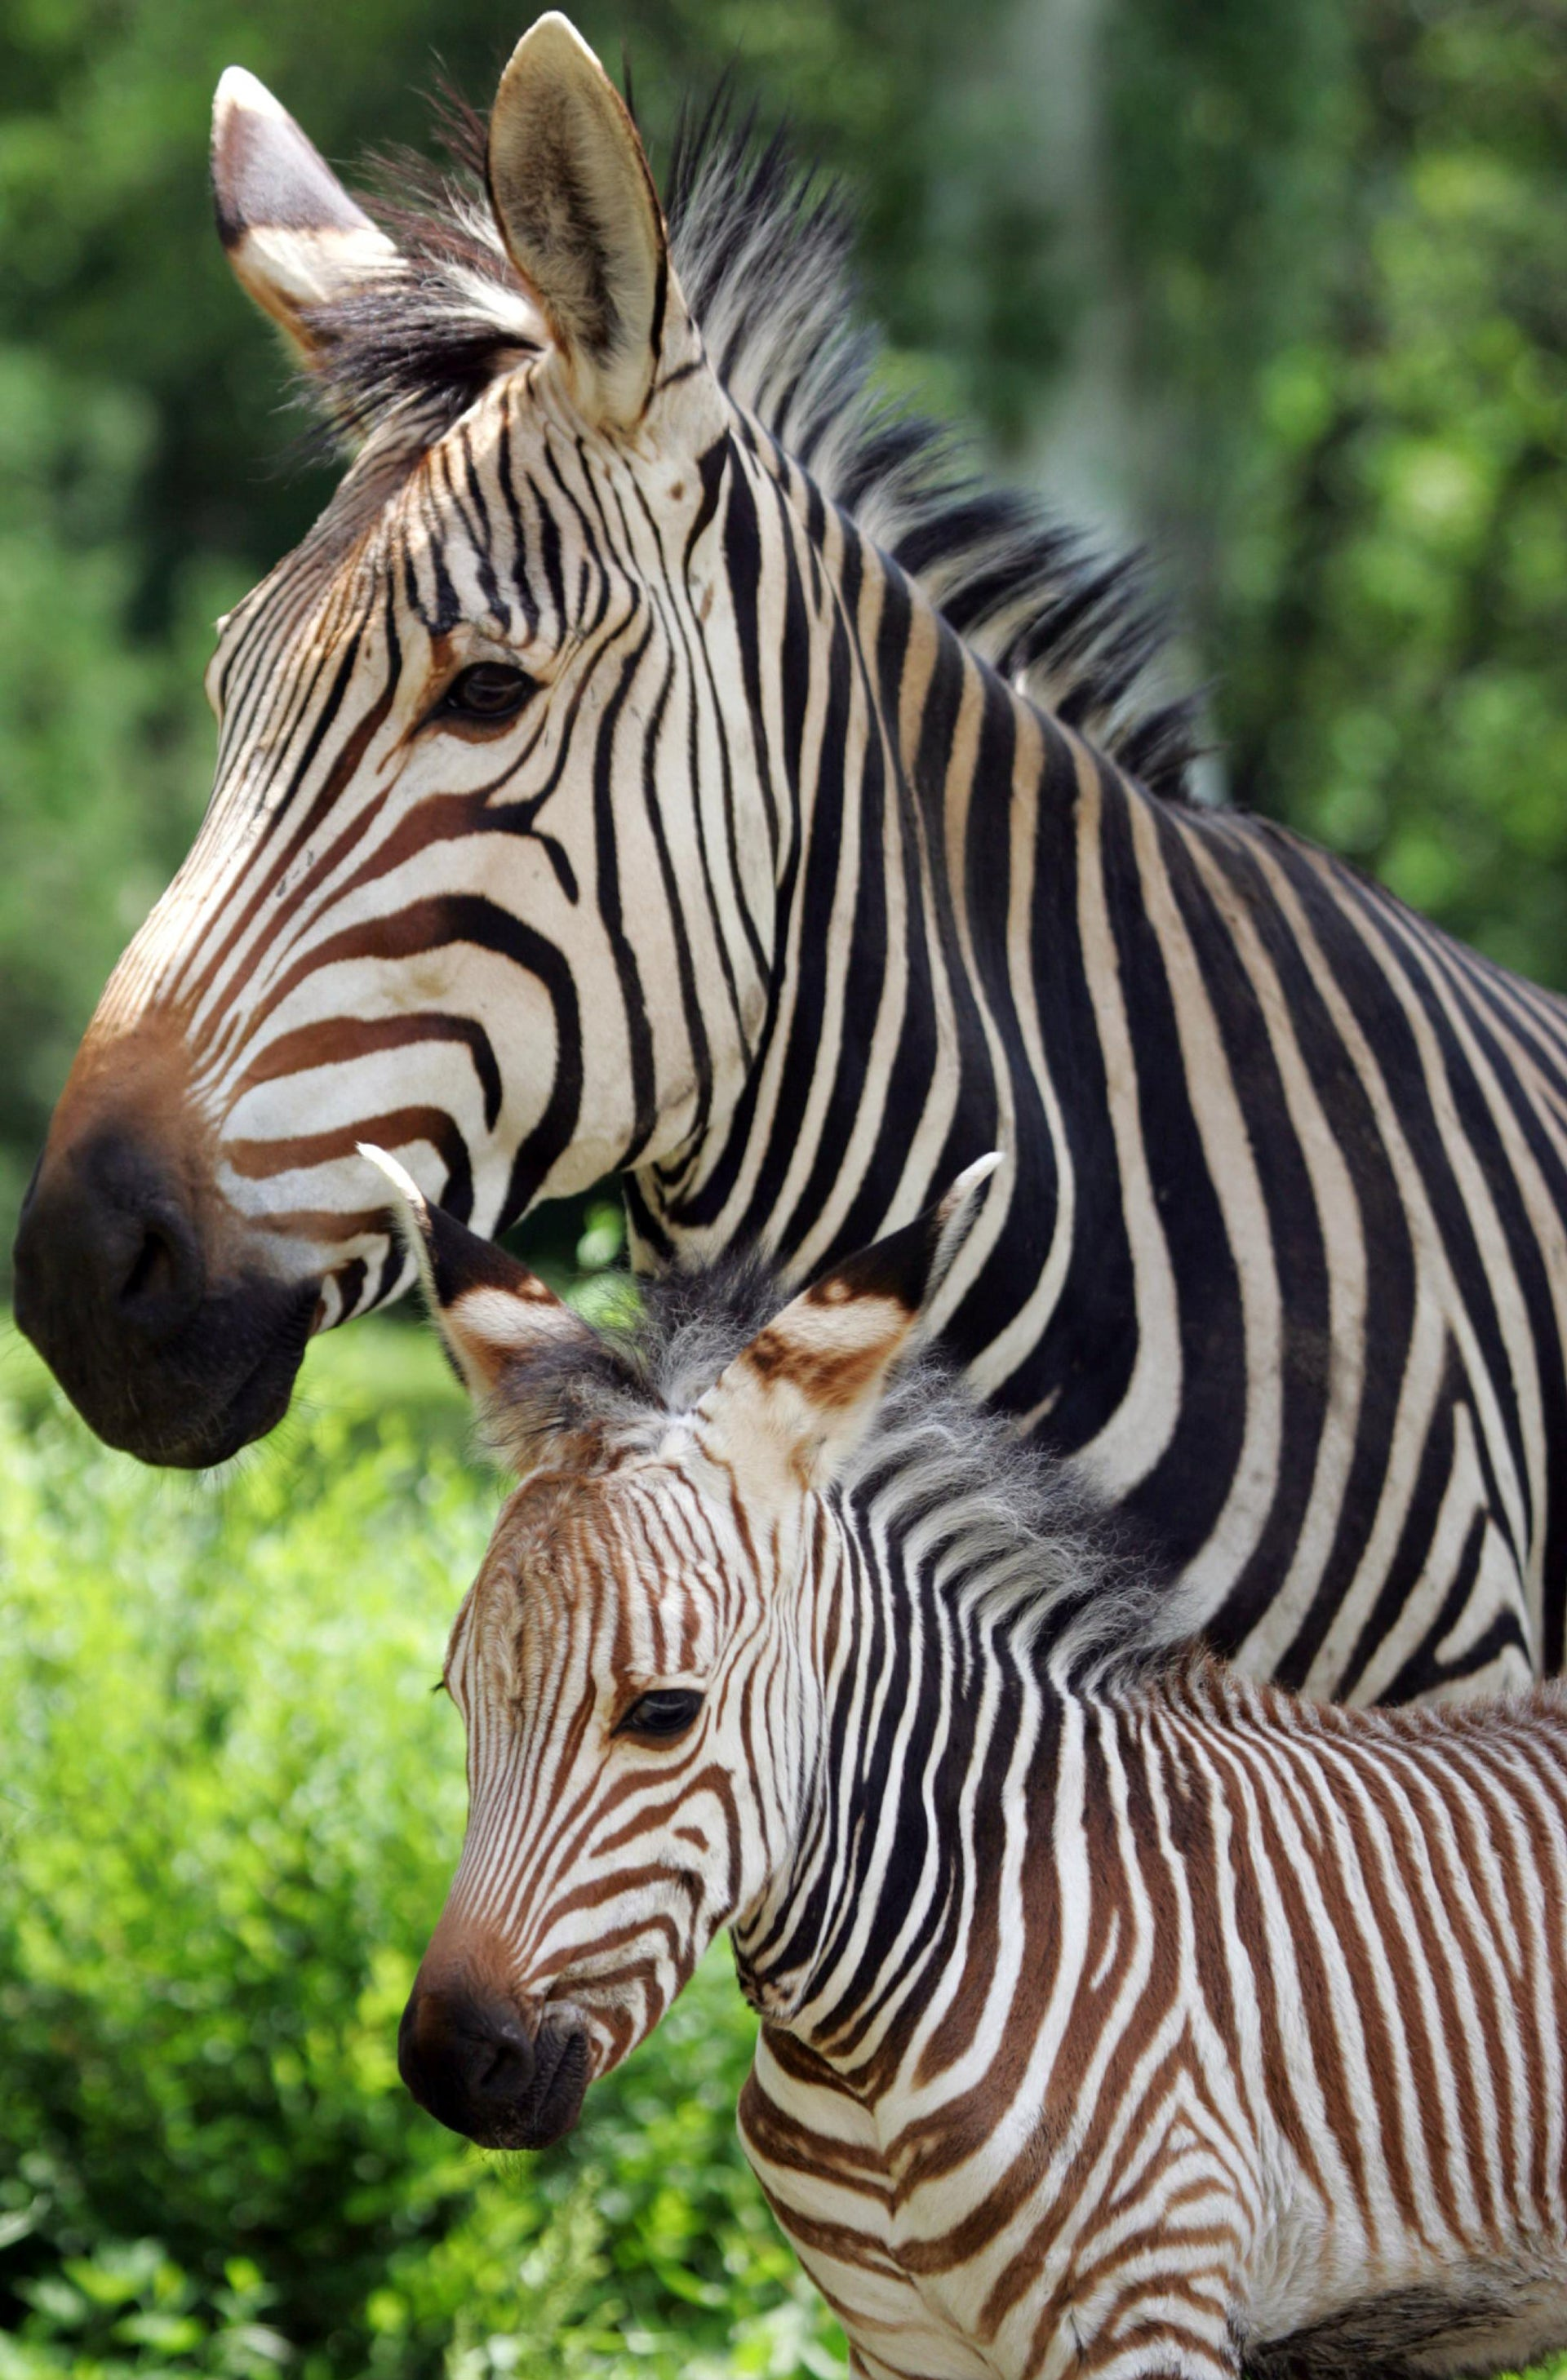 Merey, a one-week-old zebra foal, stands next to her mother Kivi in Almaty Zoo June 15, 2006.